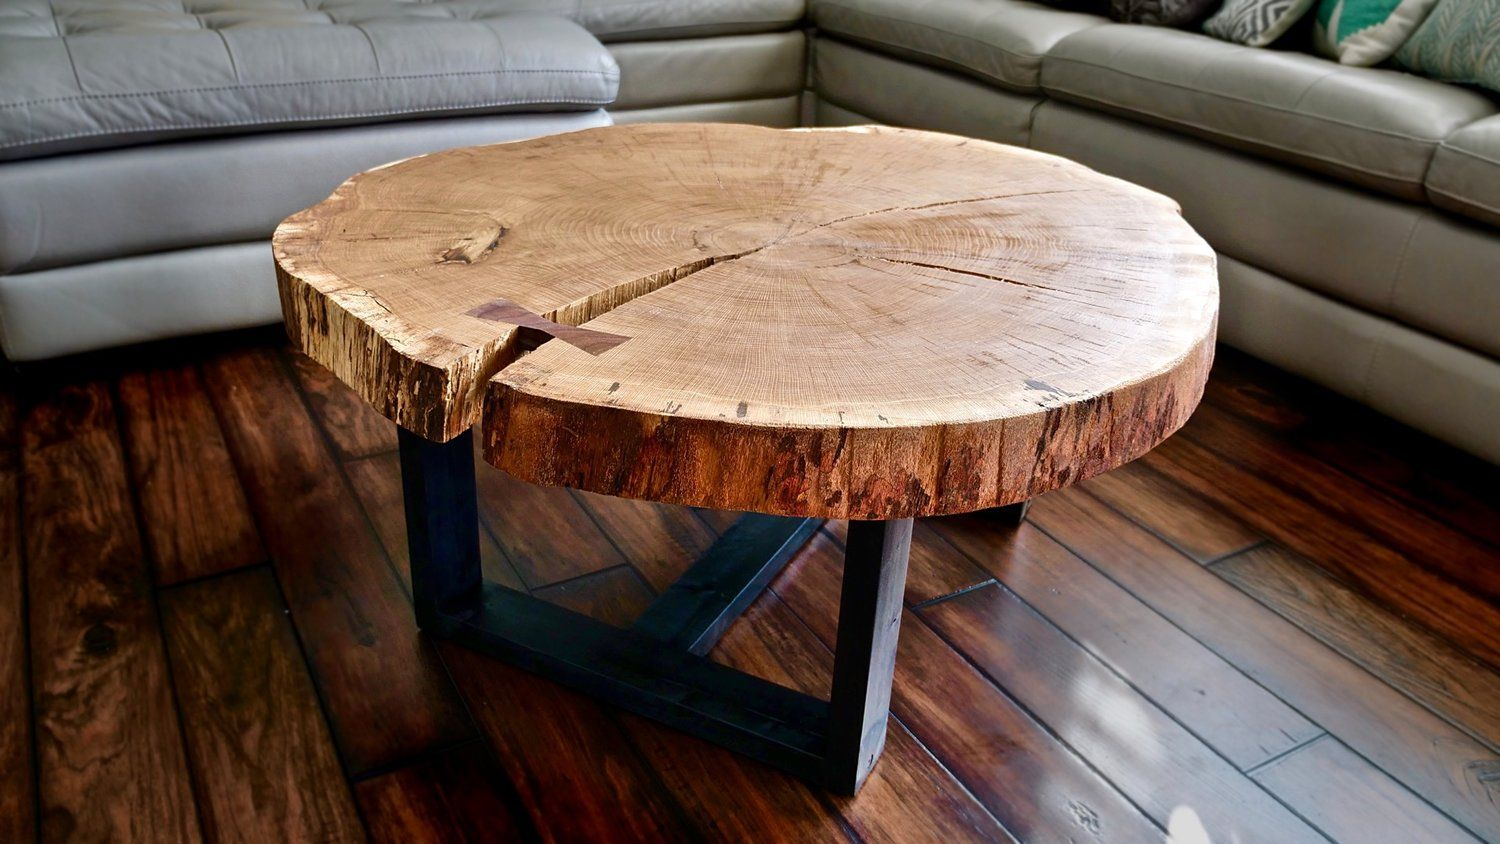 How To Build A Live Edge River Coffee Table Crafted Workshop Wood Slab Table Live Edge Wood Furniture Coffee Table Wood [ 844 x 1500 Pixel ]